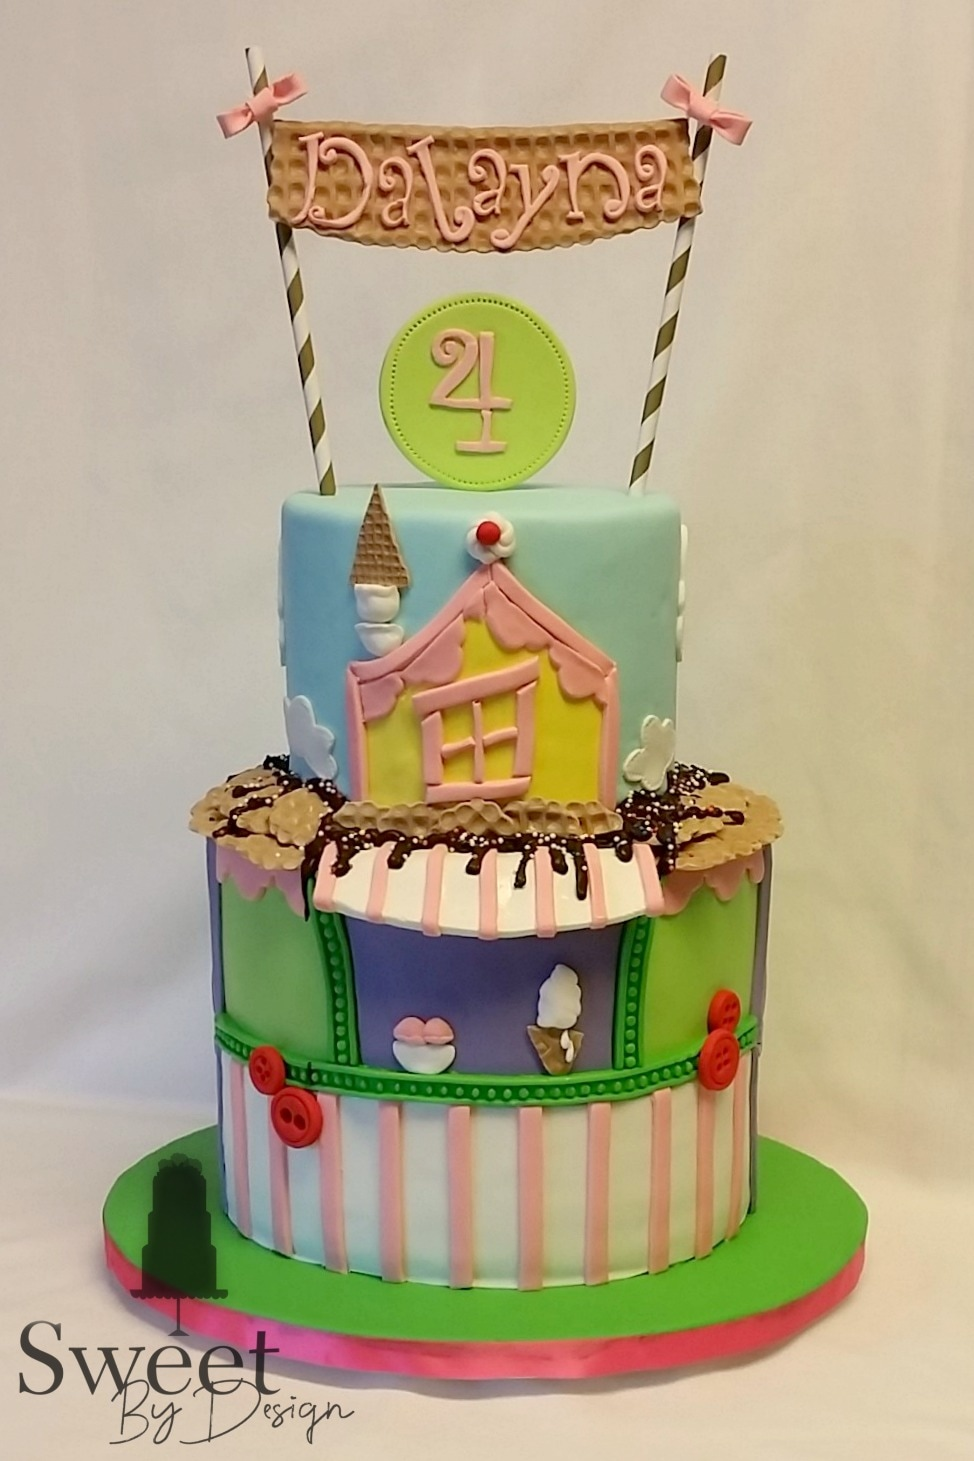 Ice Cream Shop birthday cake by Sweet By Design in Melissa, TX